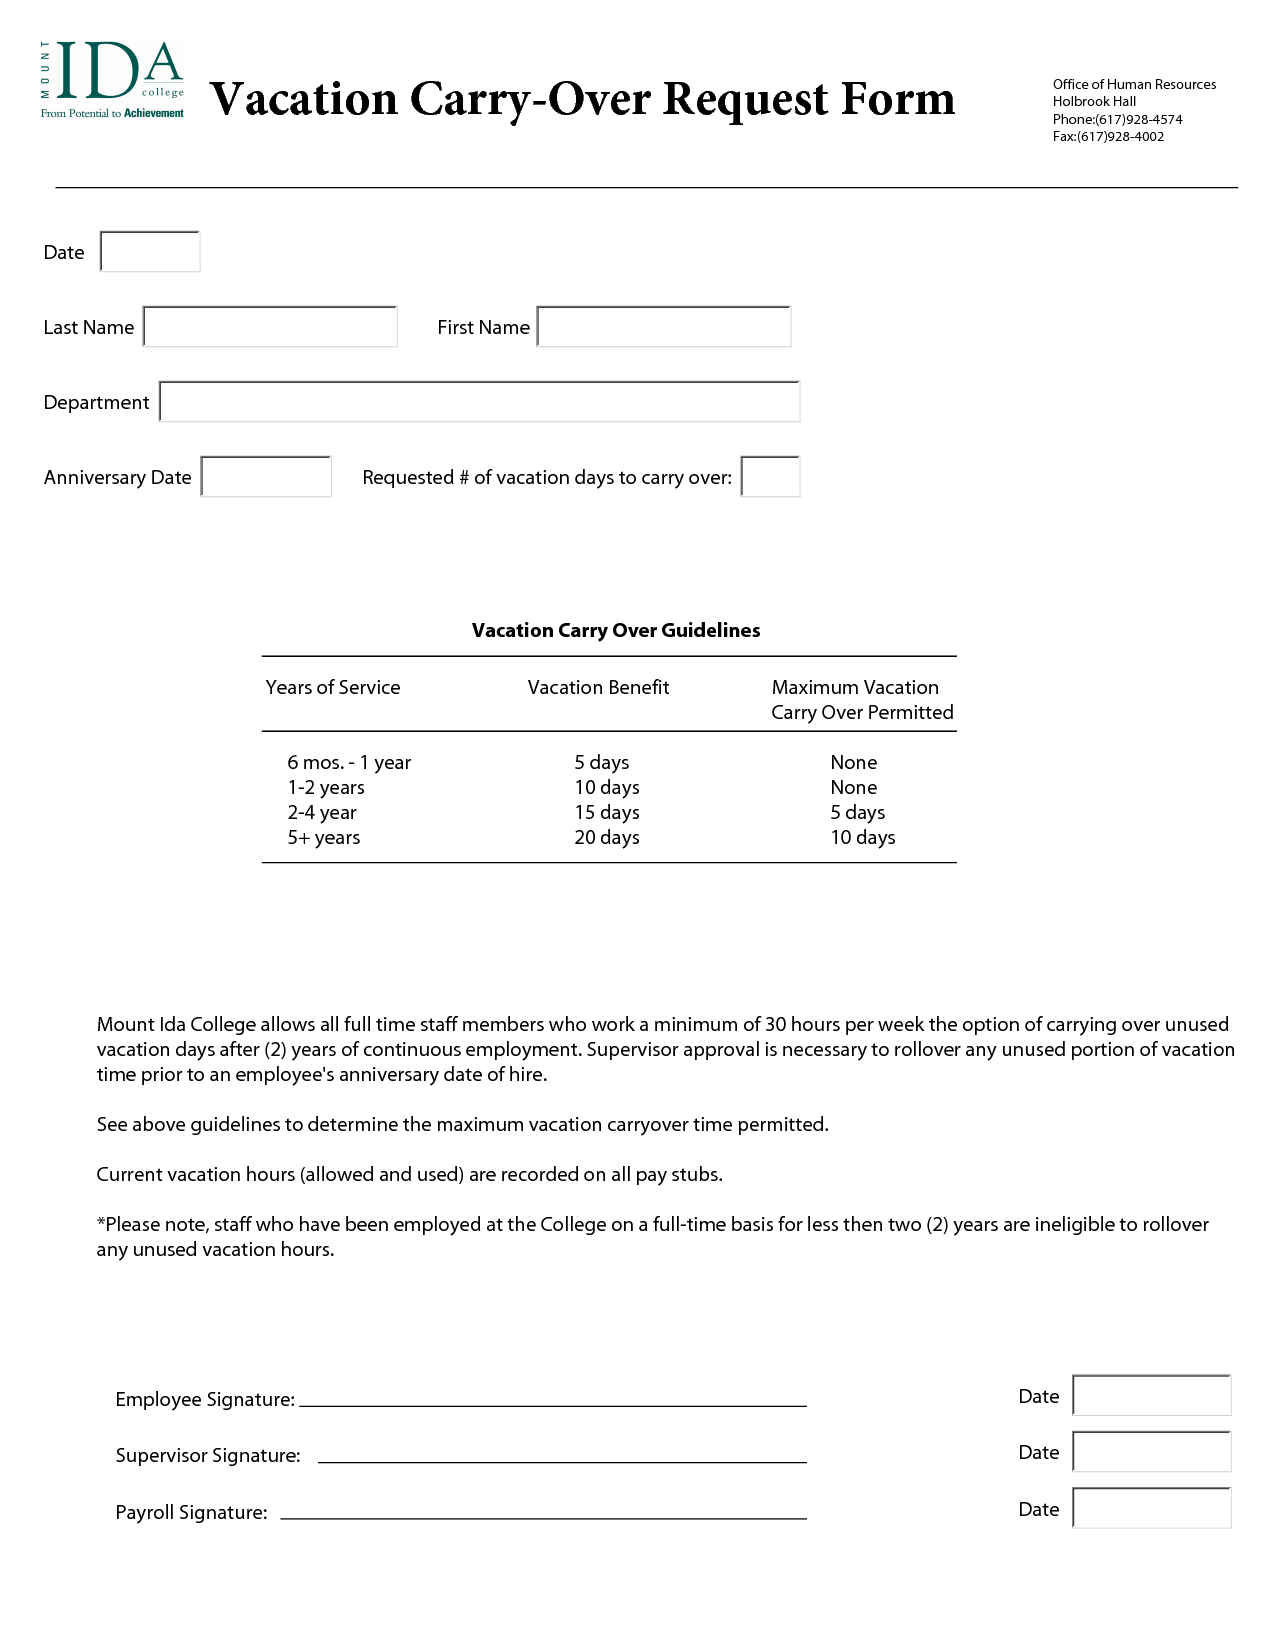 Annual Leave Request Form Template | vacation request form ...